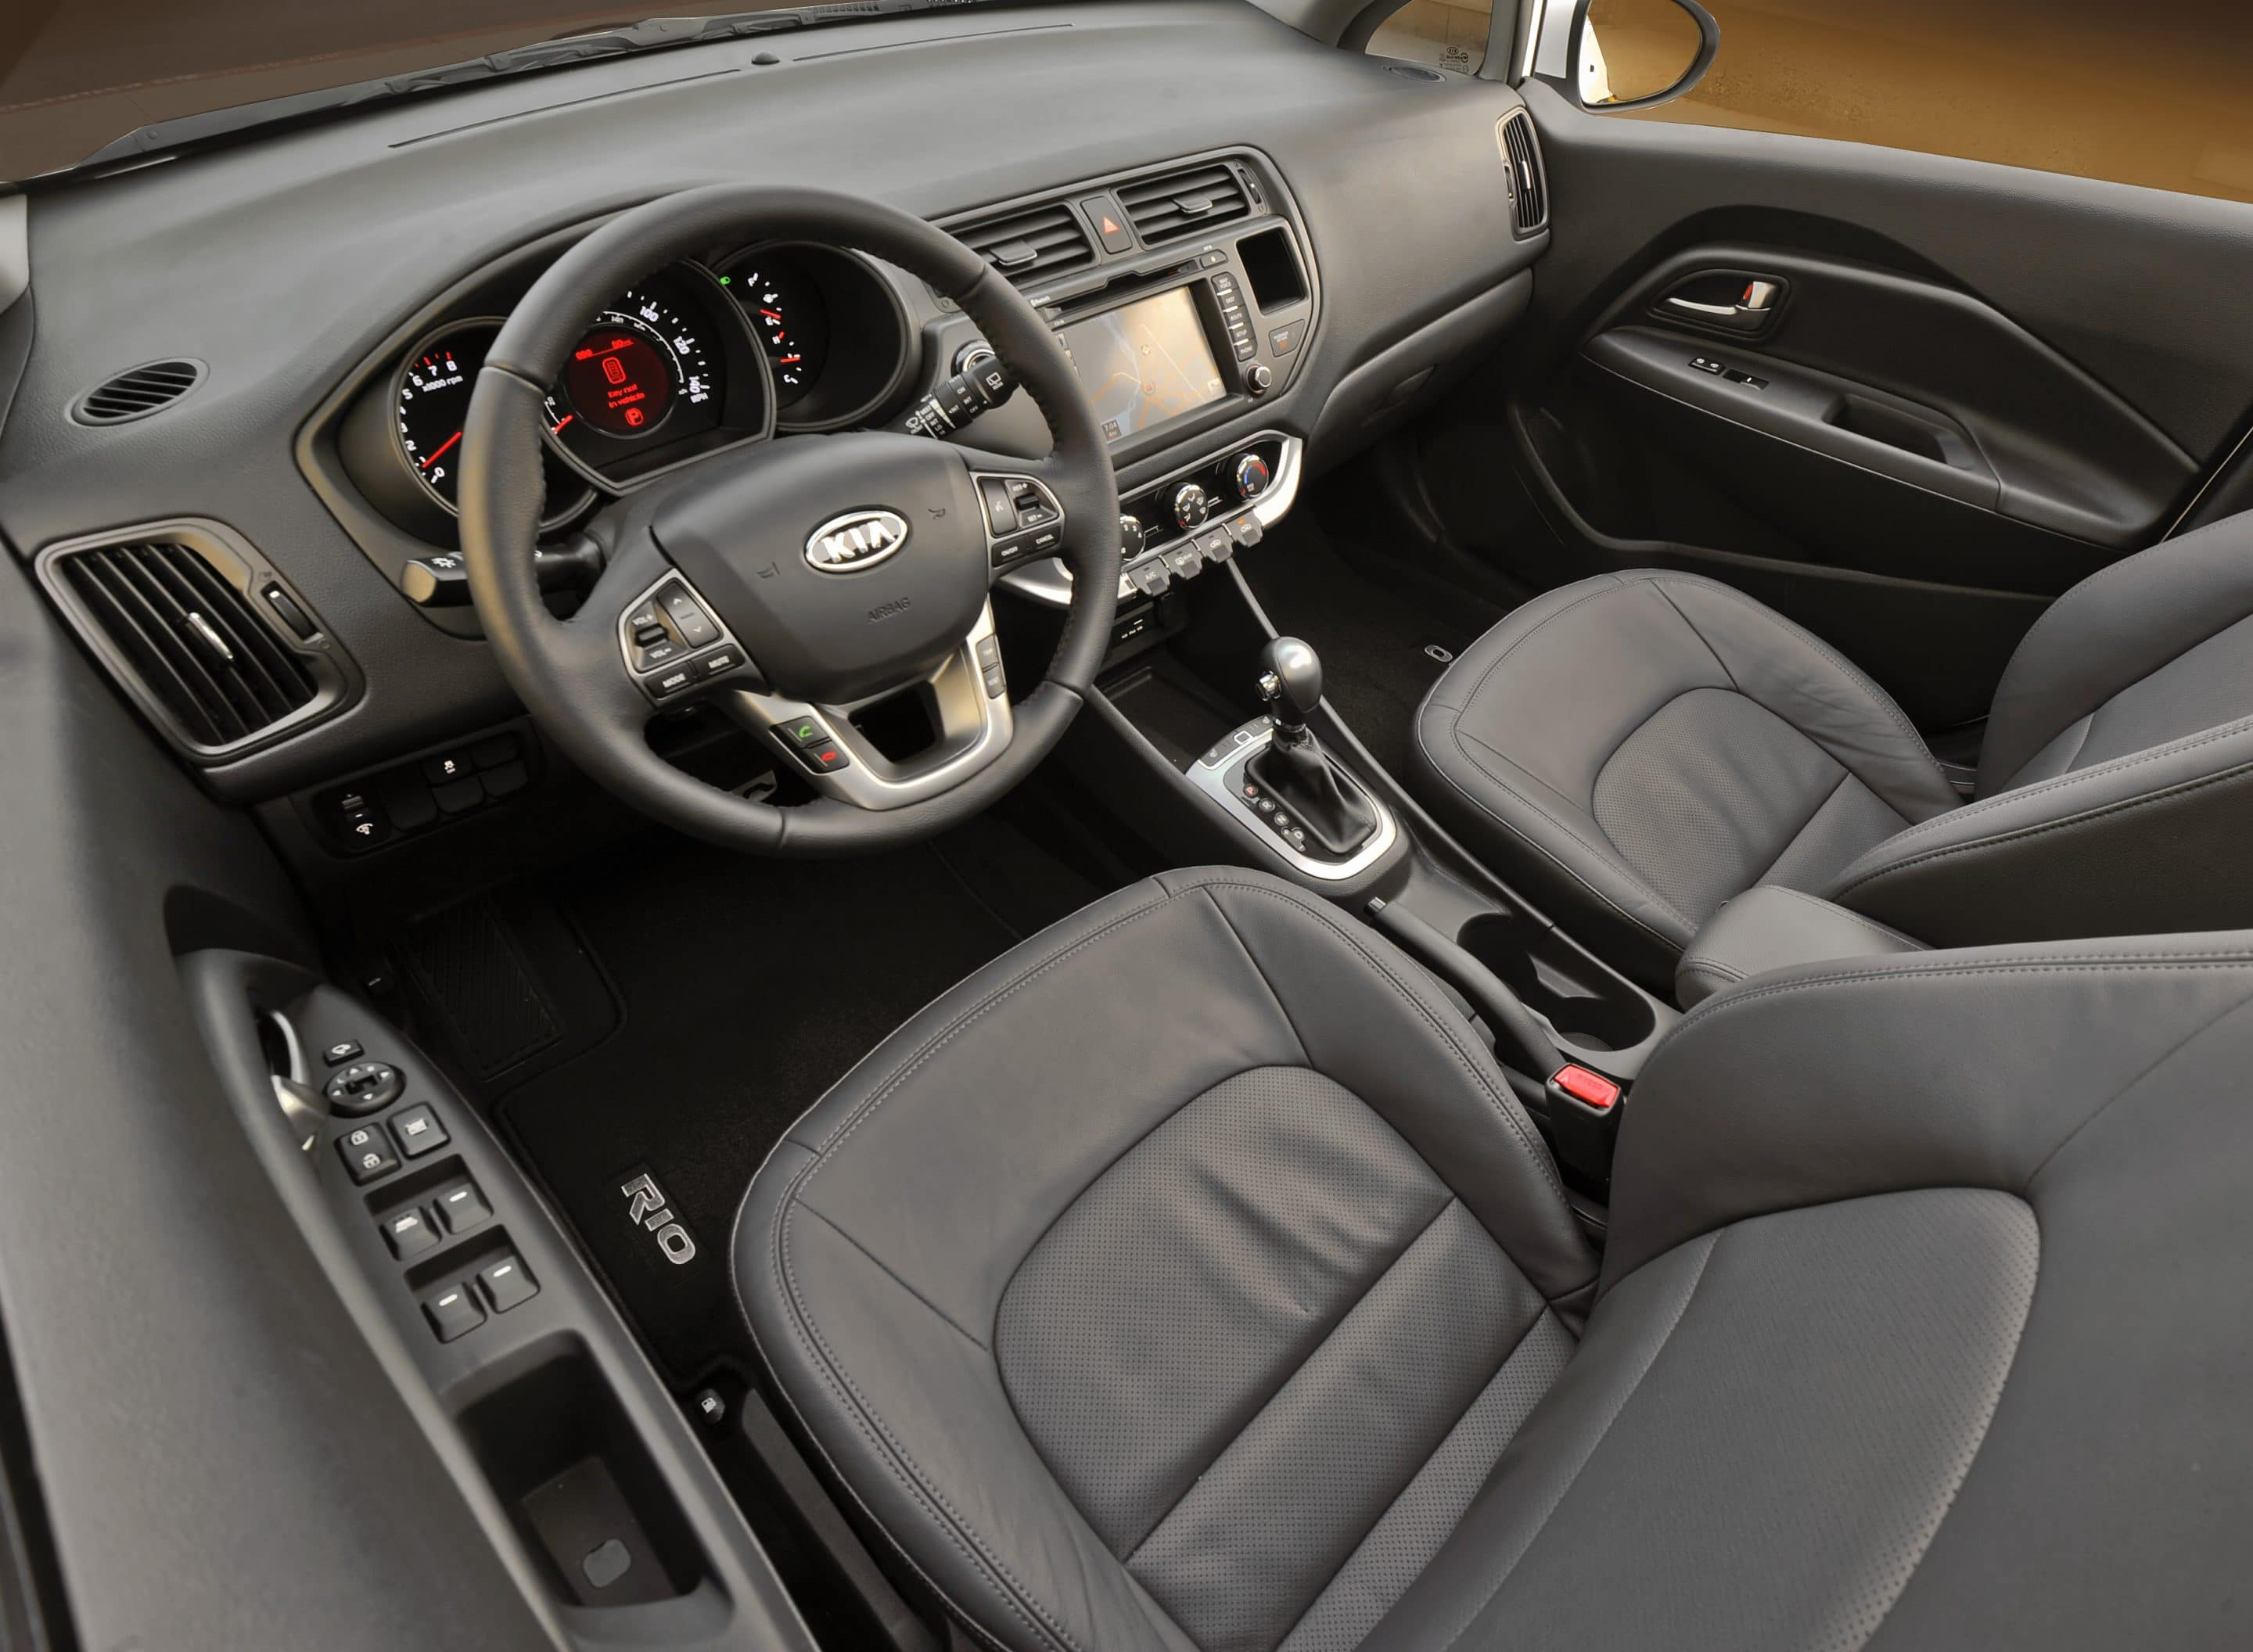 The Well Appointed Interior Says The 2012 Kia Rio ...